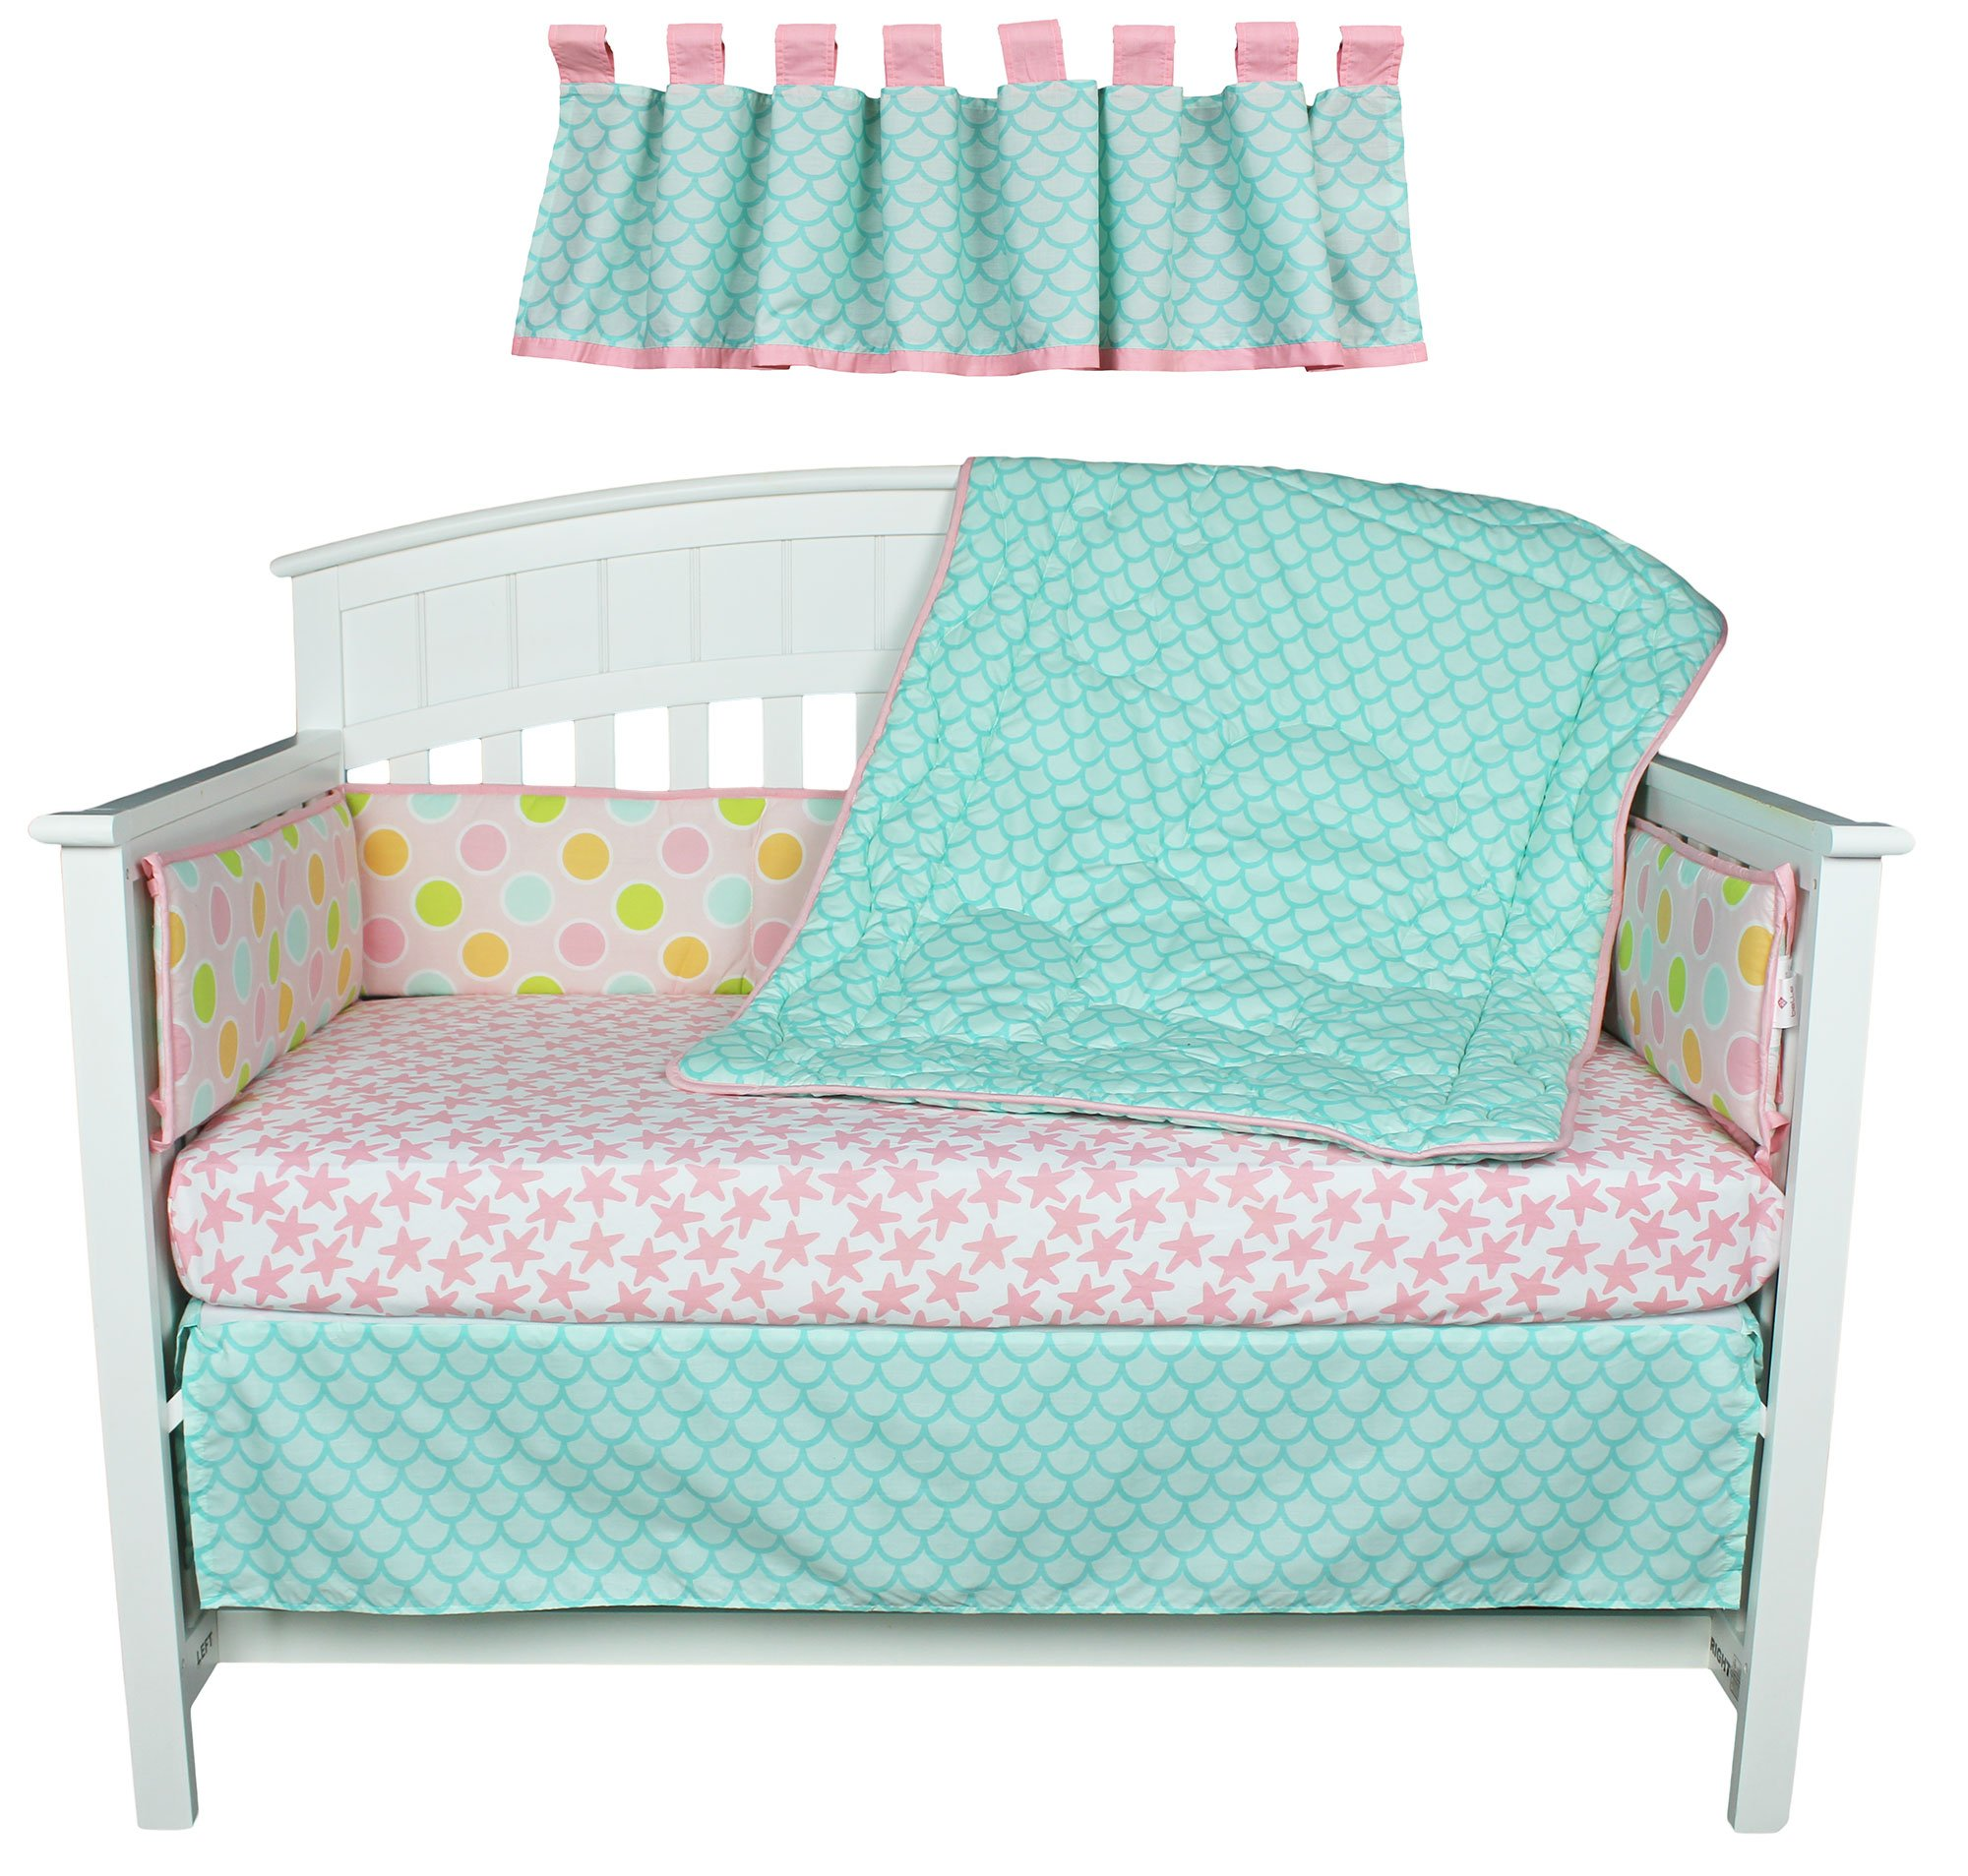 Sea Sweeties Pink and Blue Ocean 5 Piece Baby Girl Crib Bedding with Bumper by Belle by Belle (Image #5)